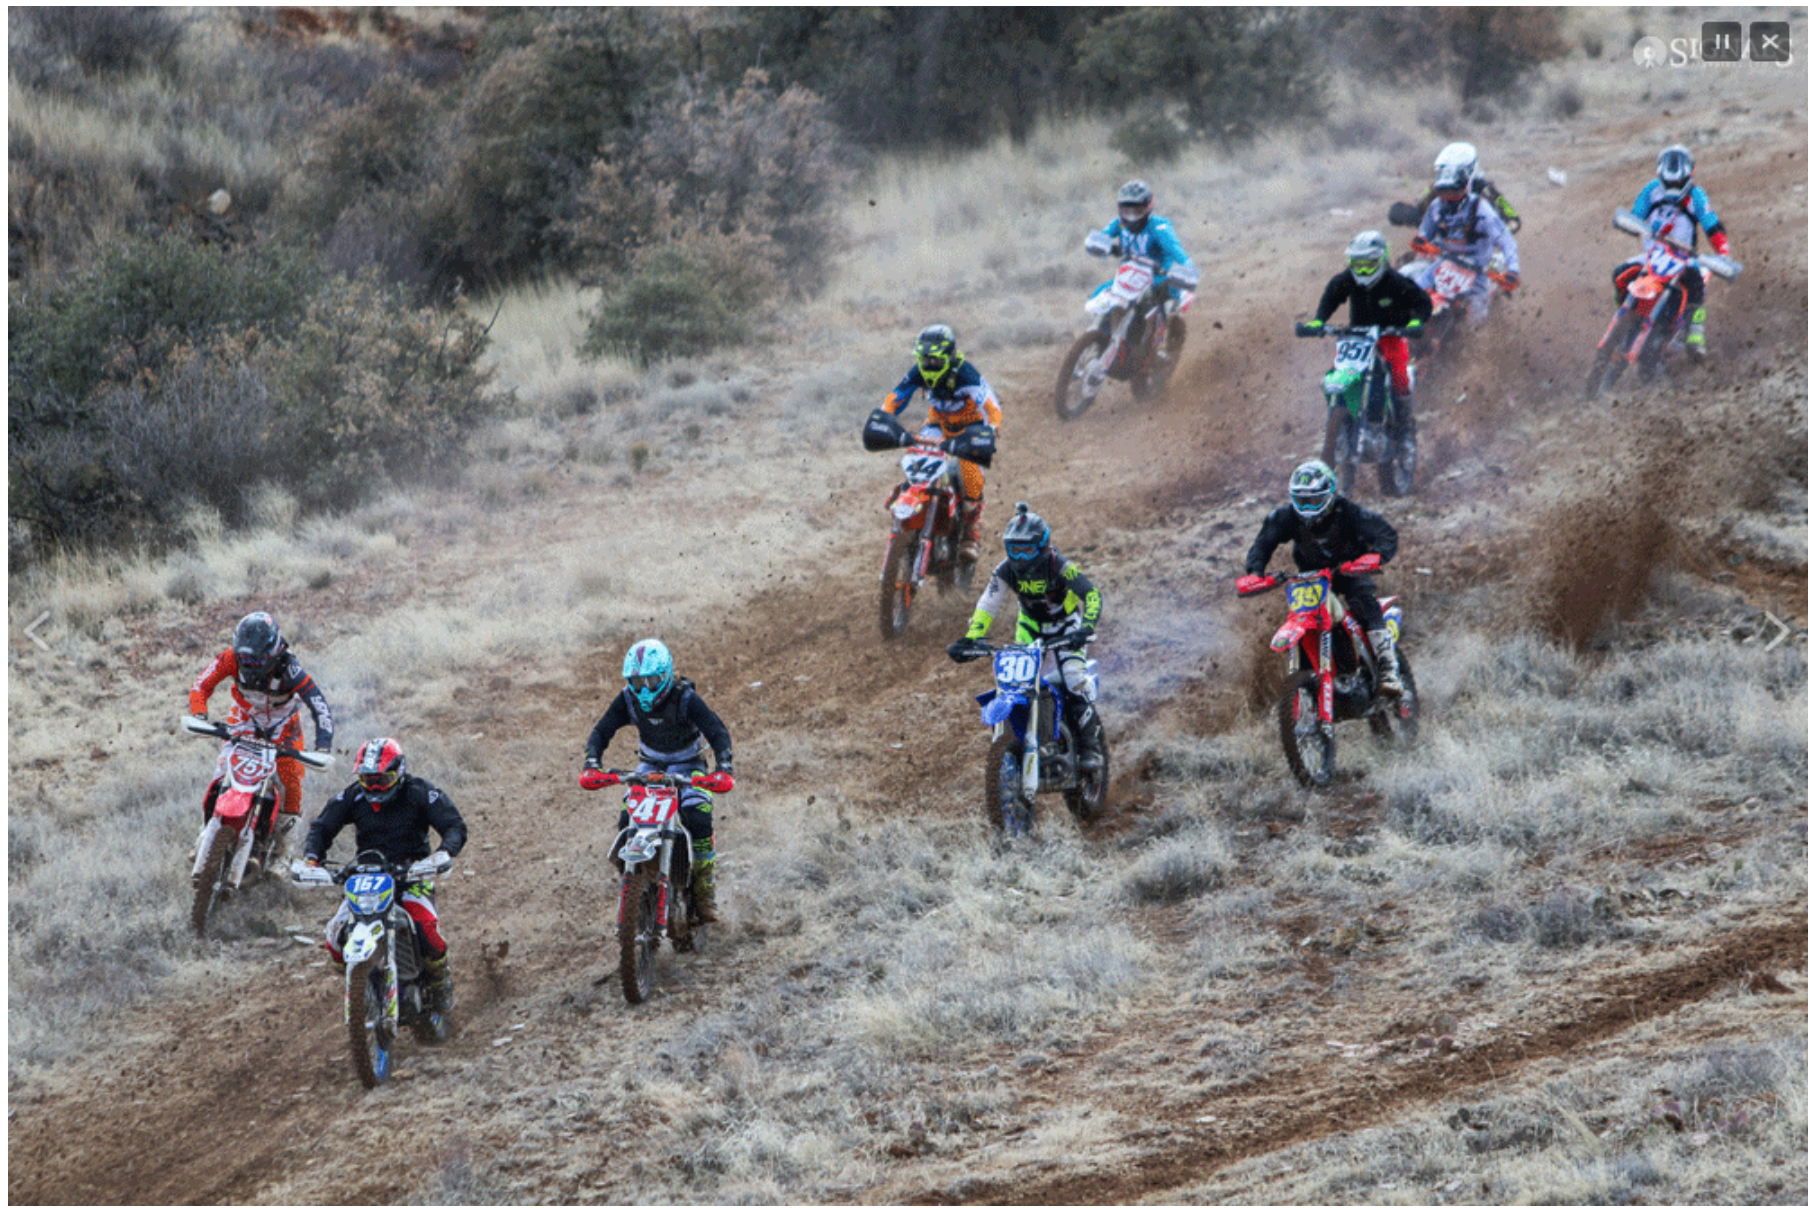 Arizona's Largest Off-Road Professional Motorcycle Race Taking Place in Prescott Valley Feb 18, 2019